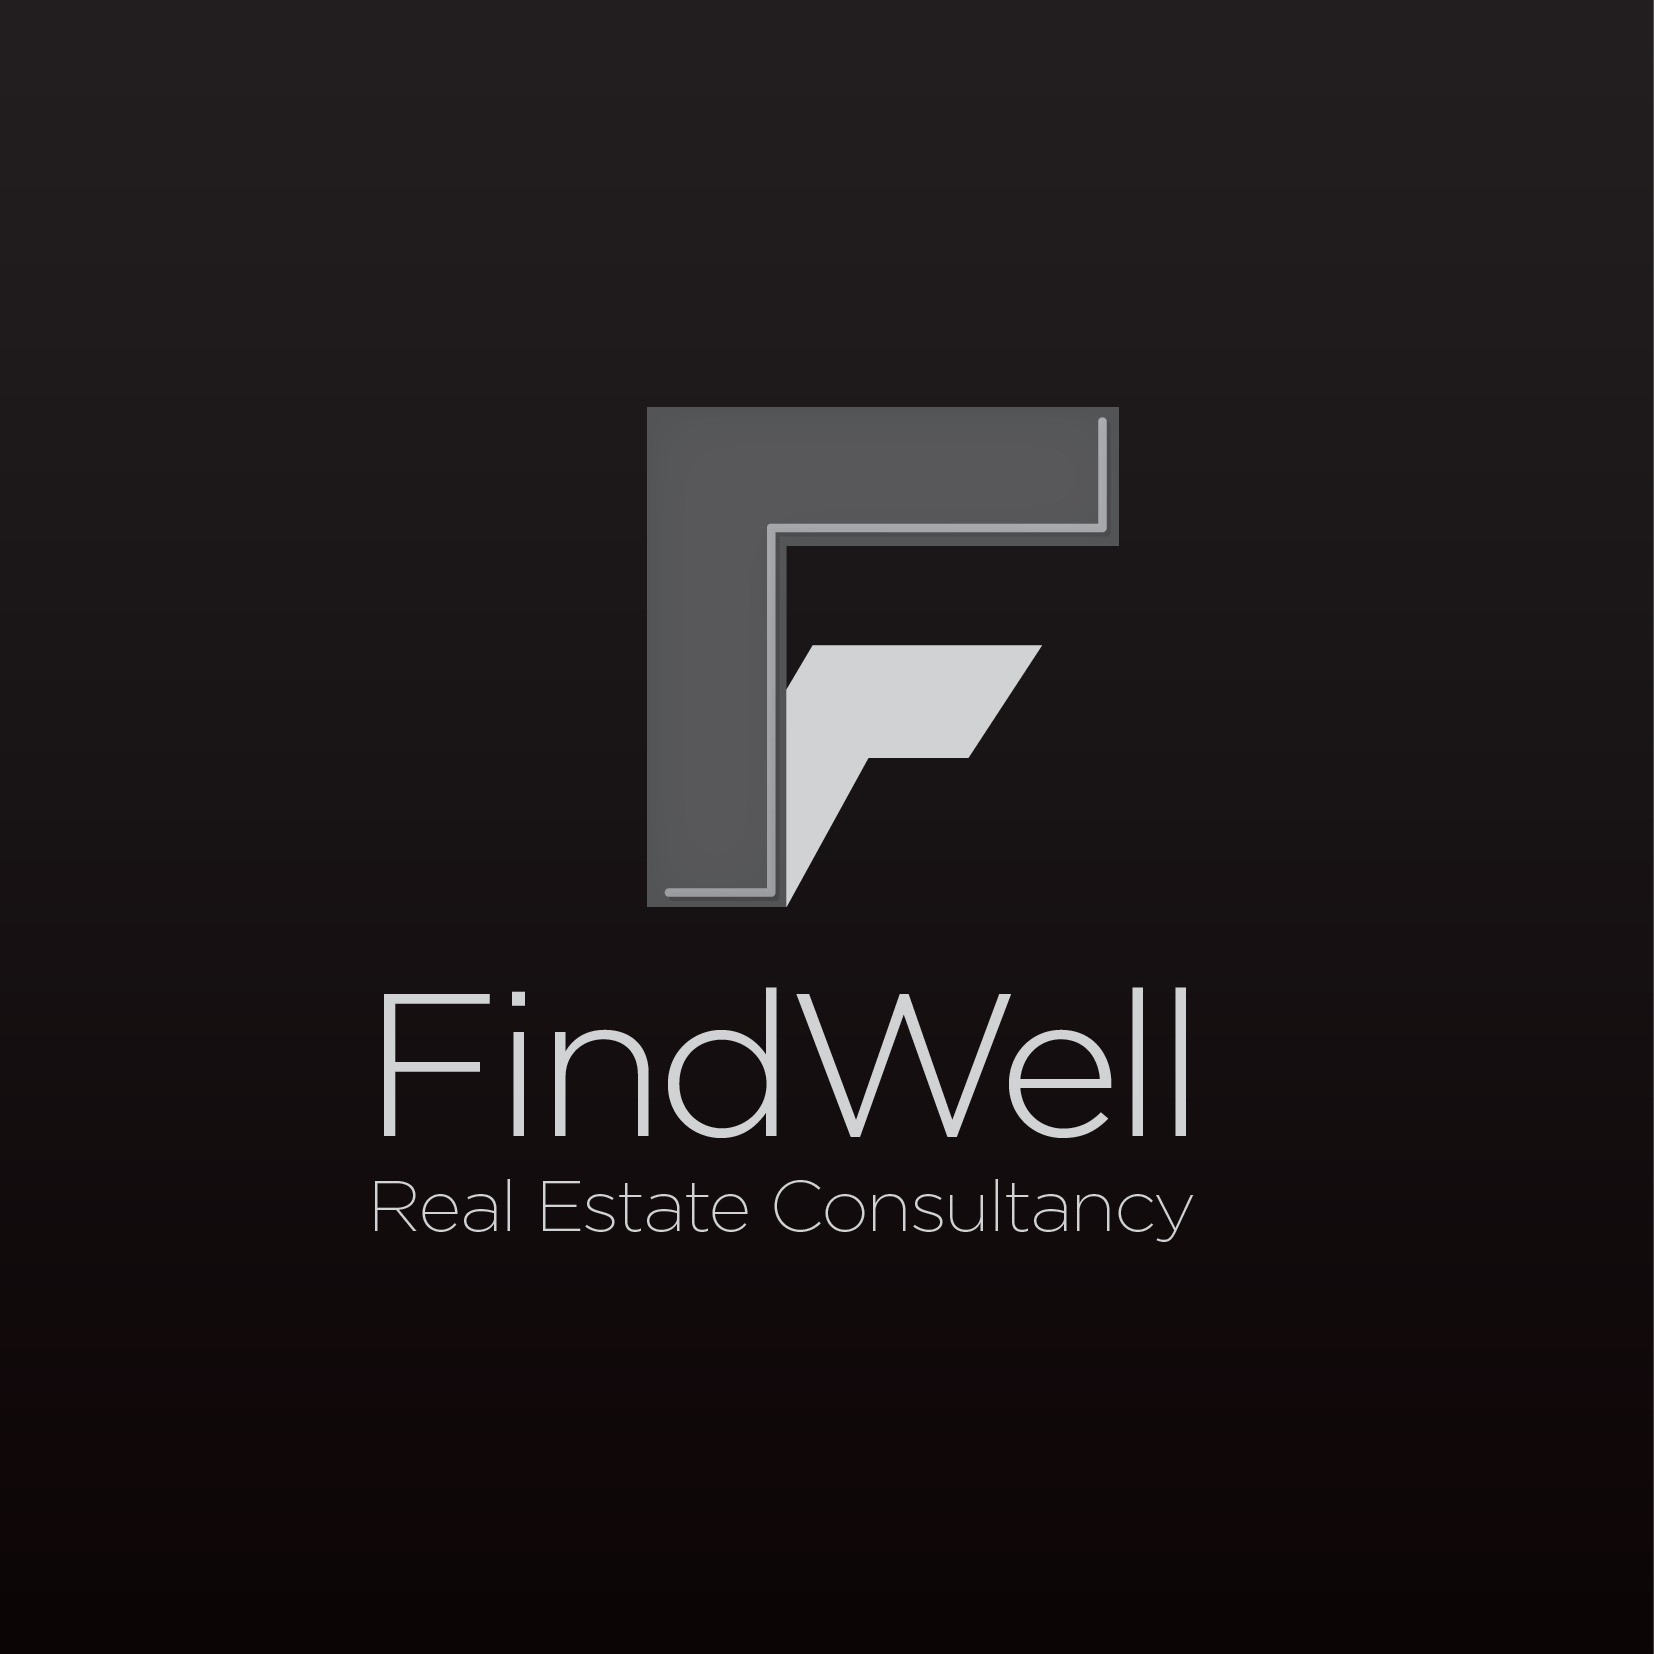 Findwell Real Estate Consultancy